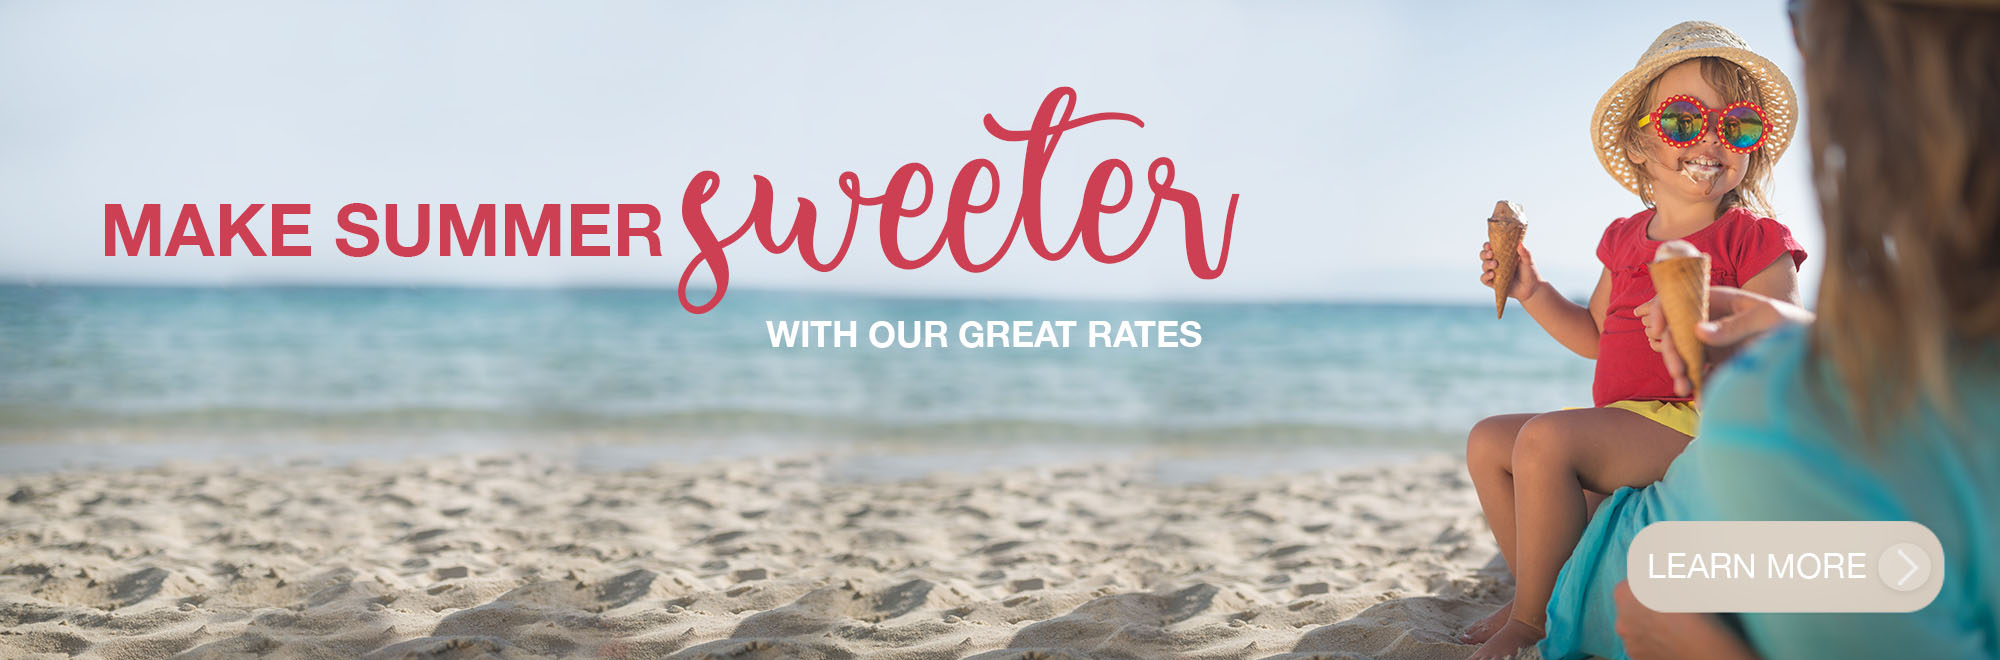 Make summer sweeter with our great rates